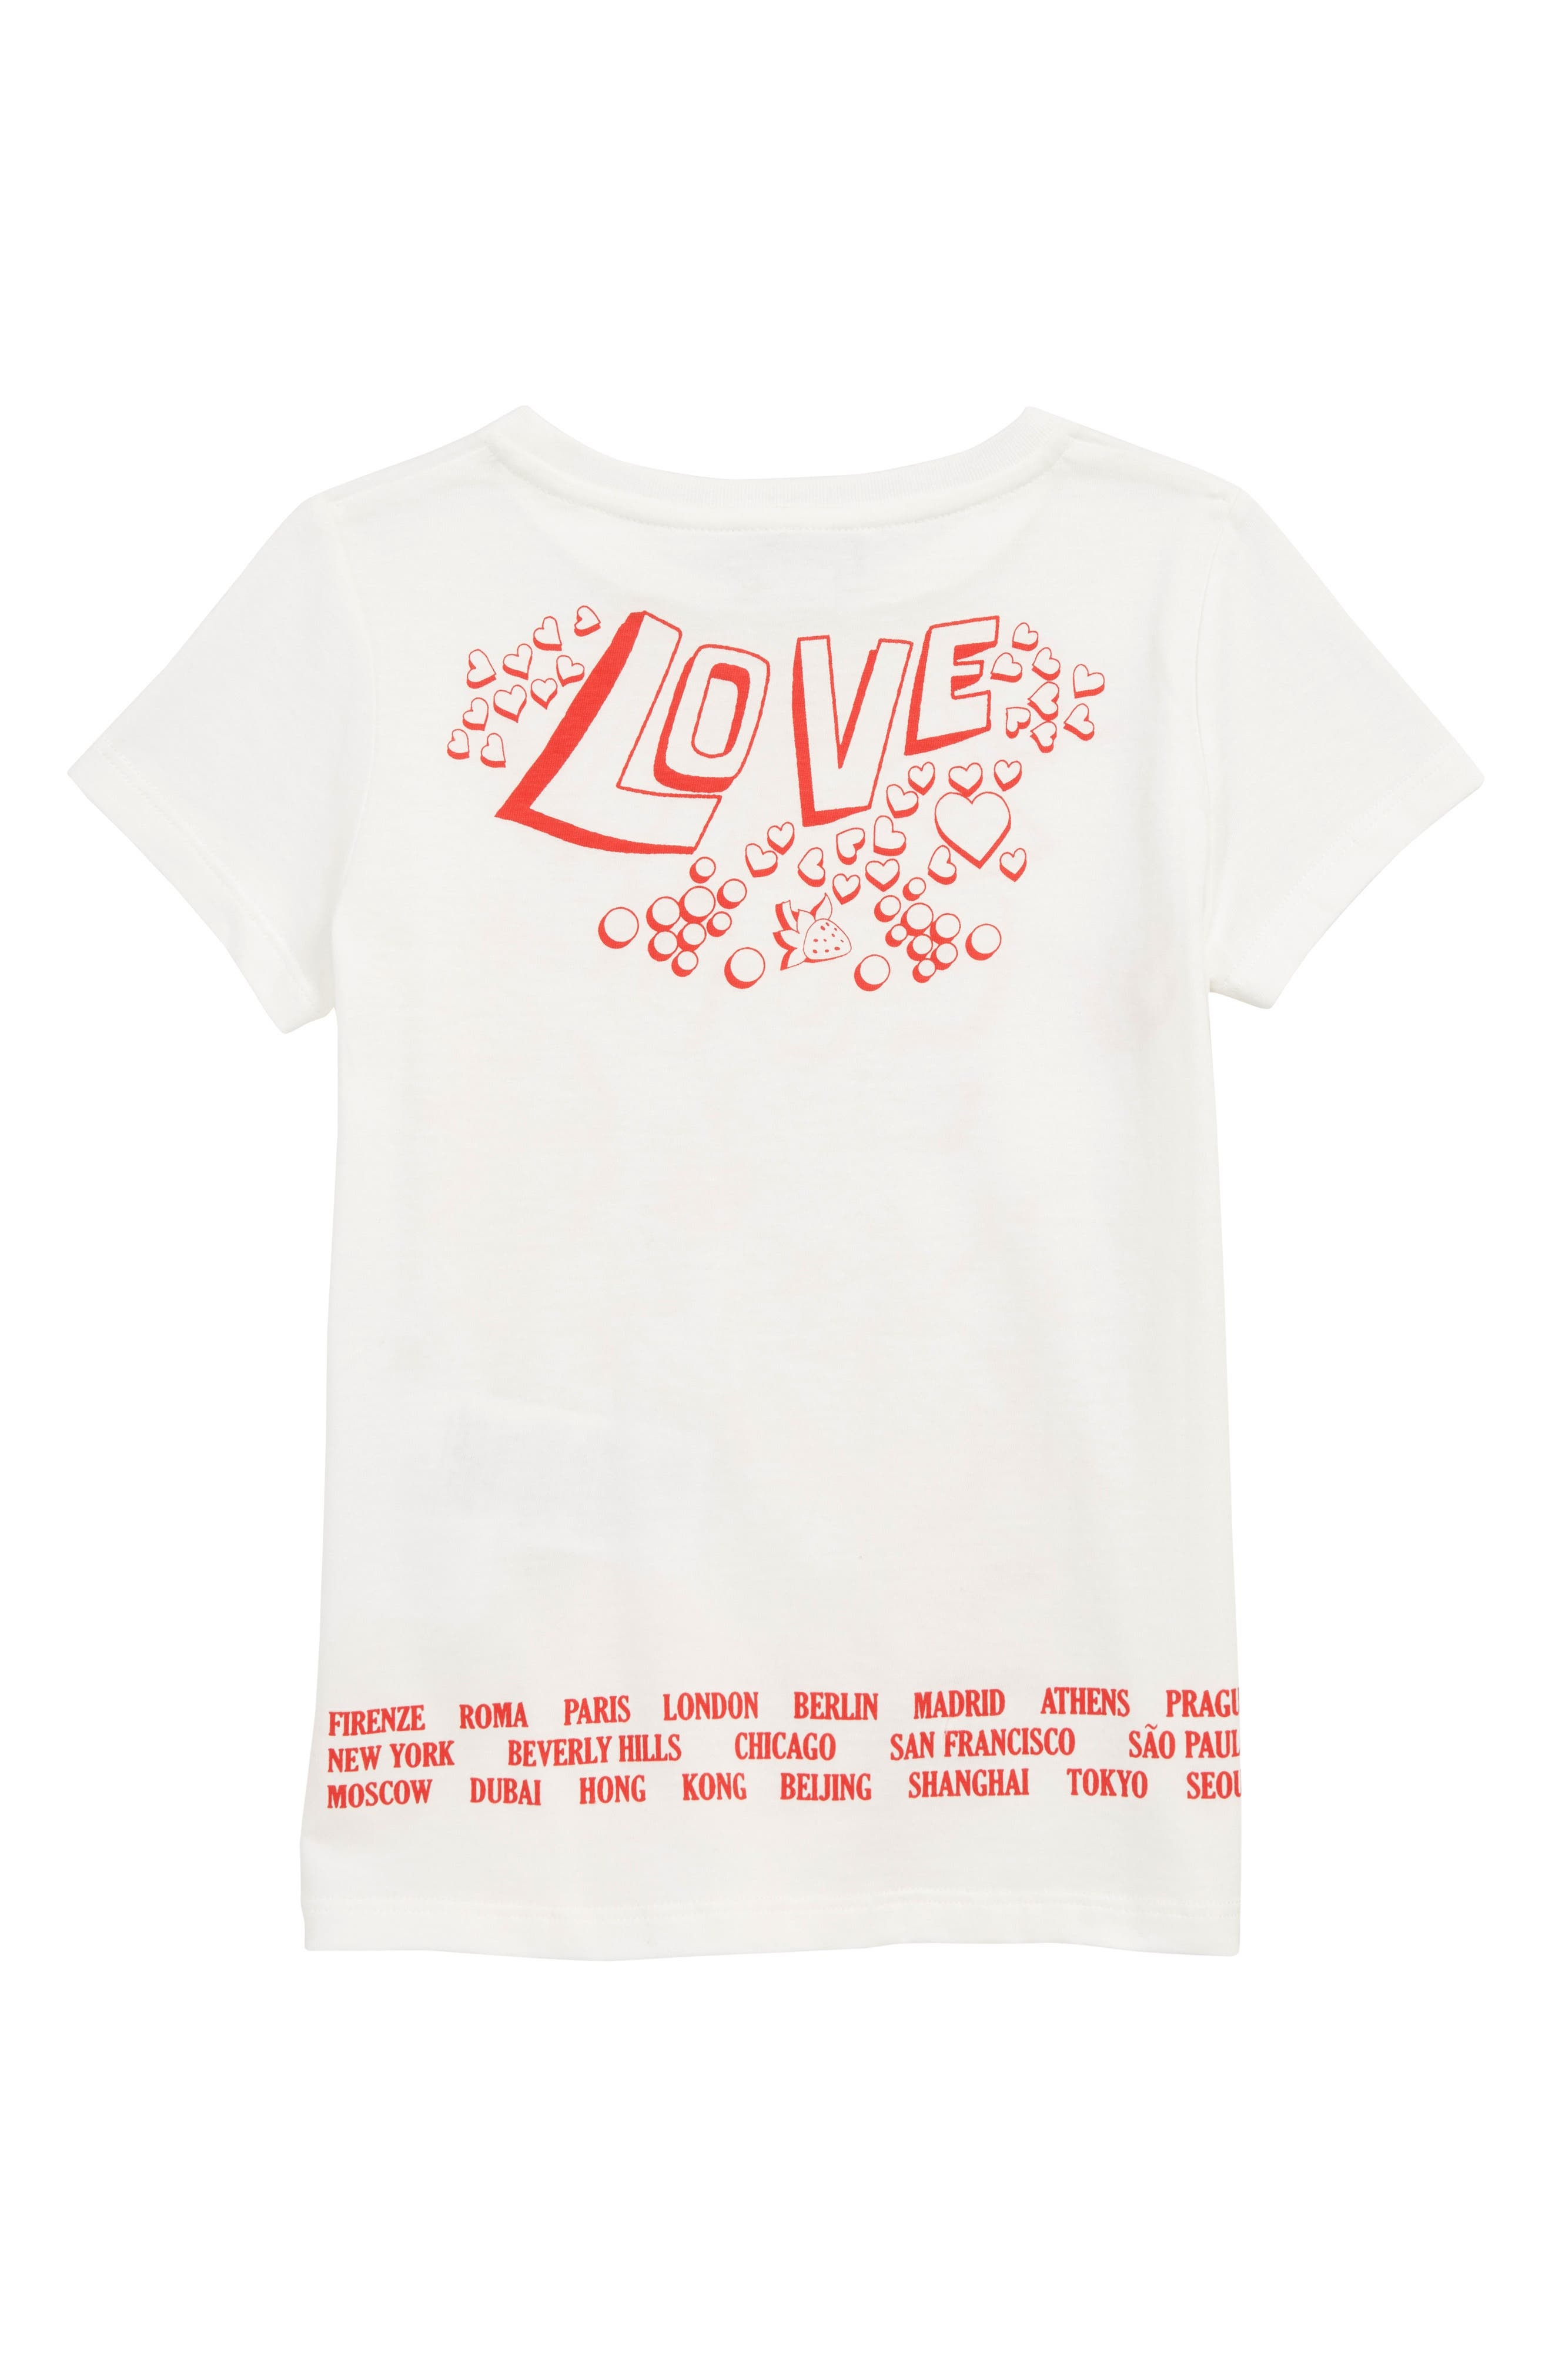 GUCCI,                             Graphic Tee,                             Alternate thumbnail 2, color,                             WHITE/ BRIGHT RED